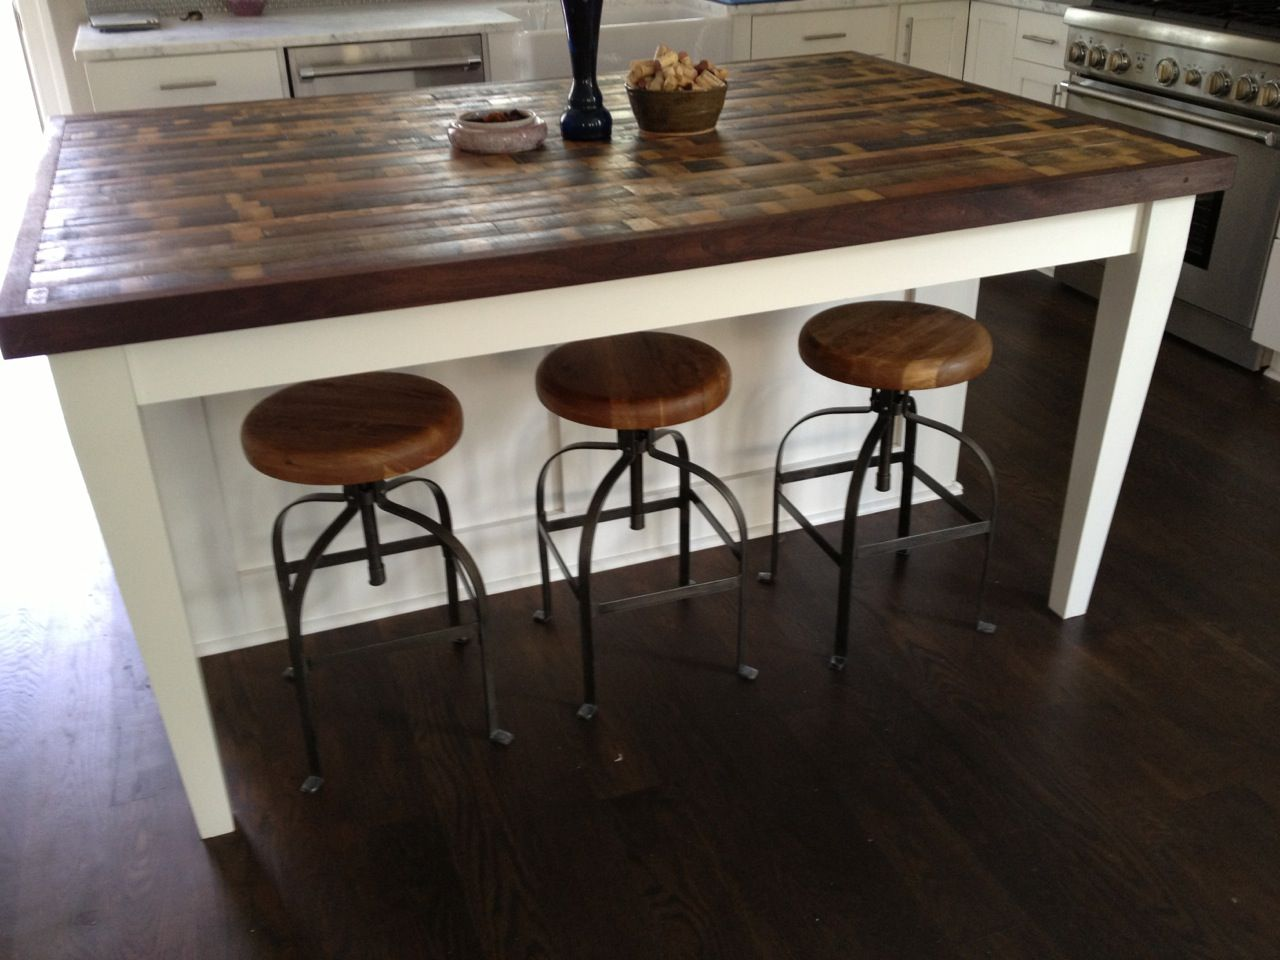 butcher block table tops kitchen island countertop Attractive Kitchen Island Design Ideas